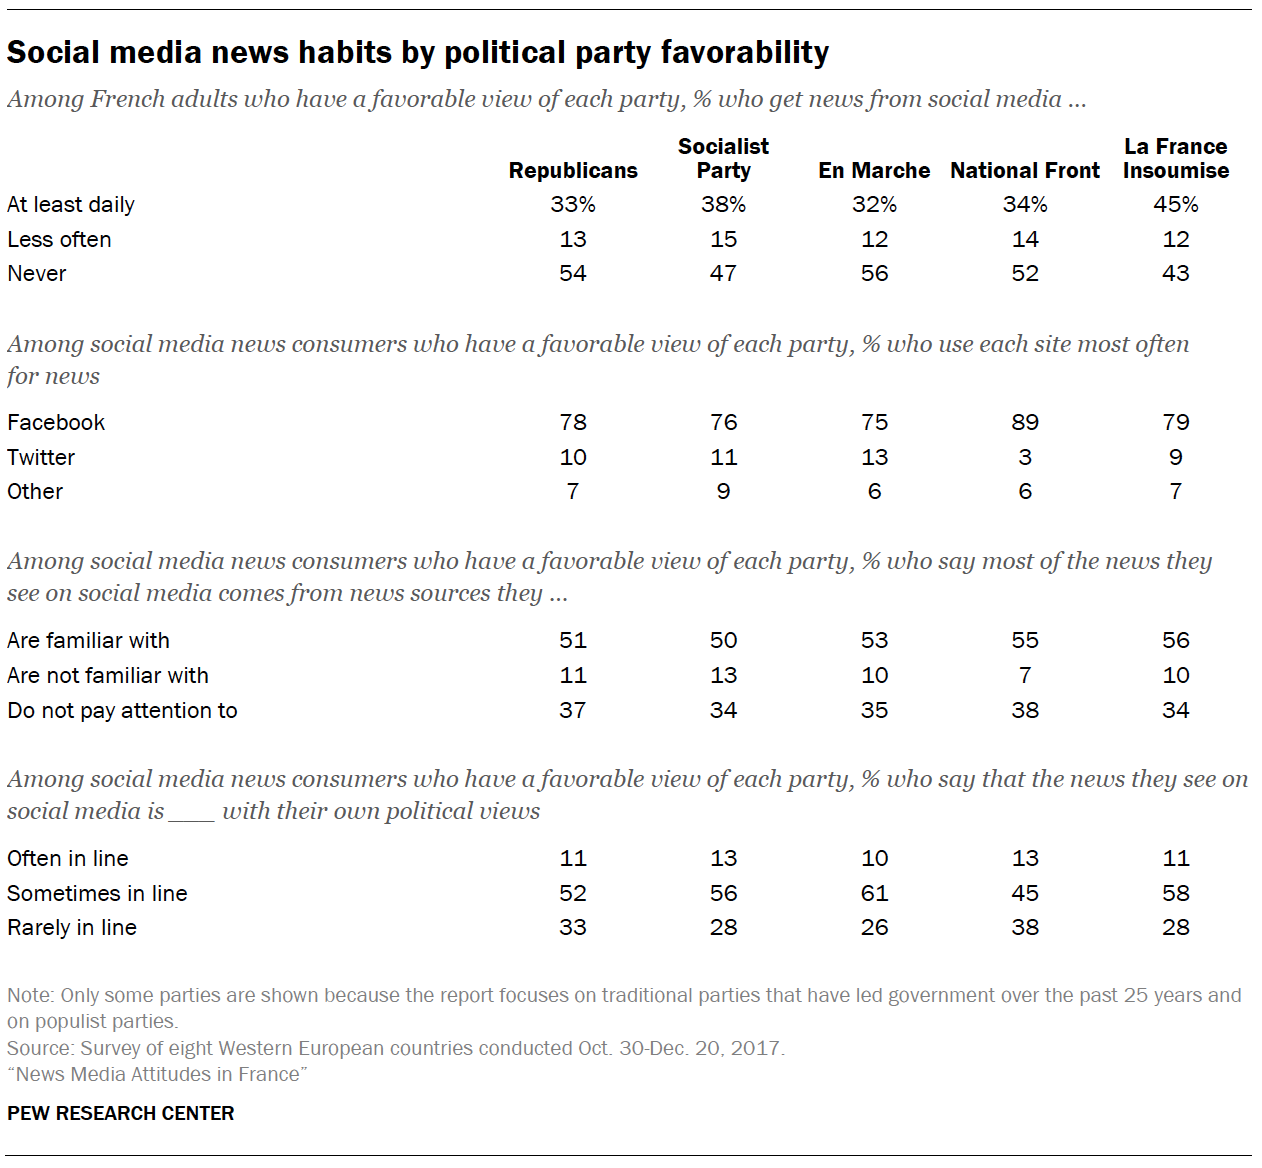 Social media news habits by political party favorability